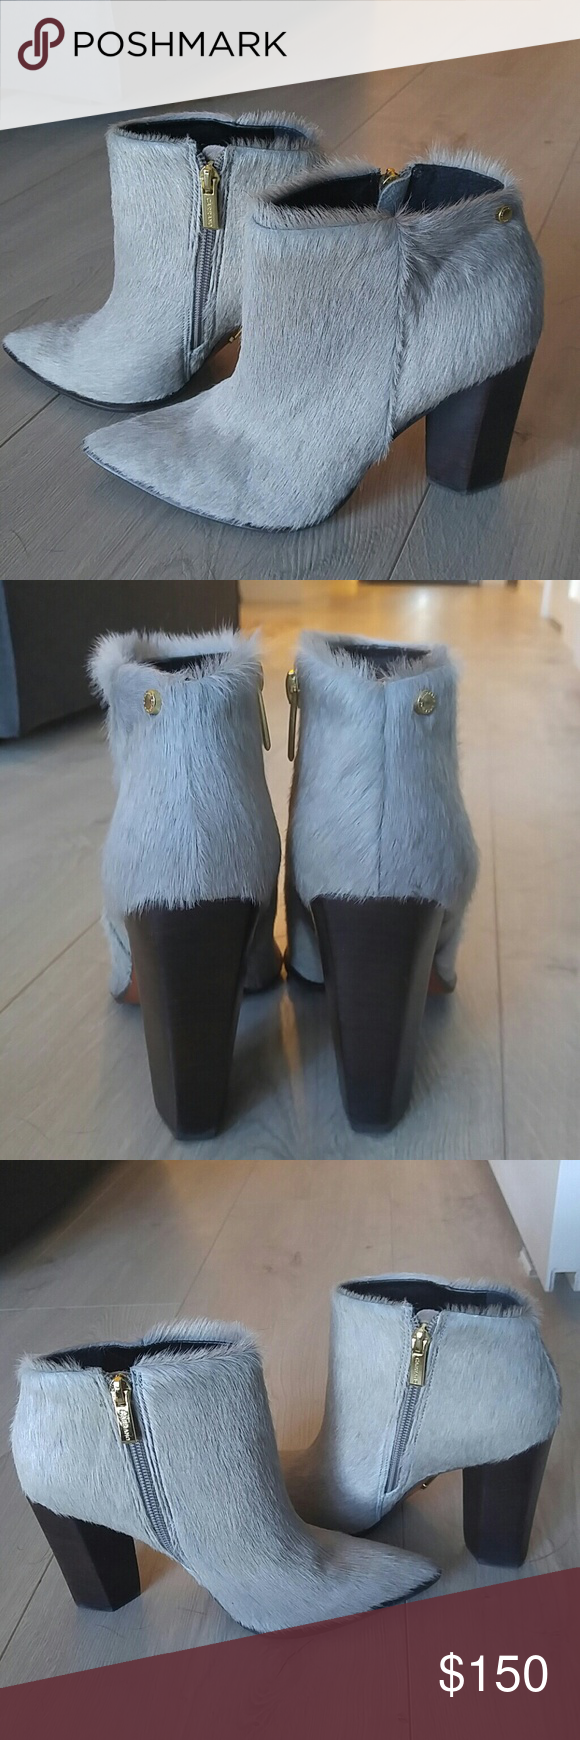 Pony hair boots Beautiful Carrano gray pony fur boots with espresso heel. In great condition just don't wear them enough. Piperlime Shoes Ankle Boots & Booties